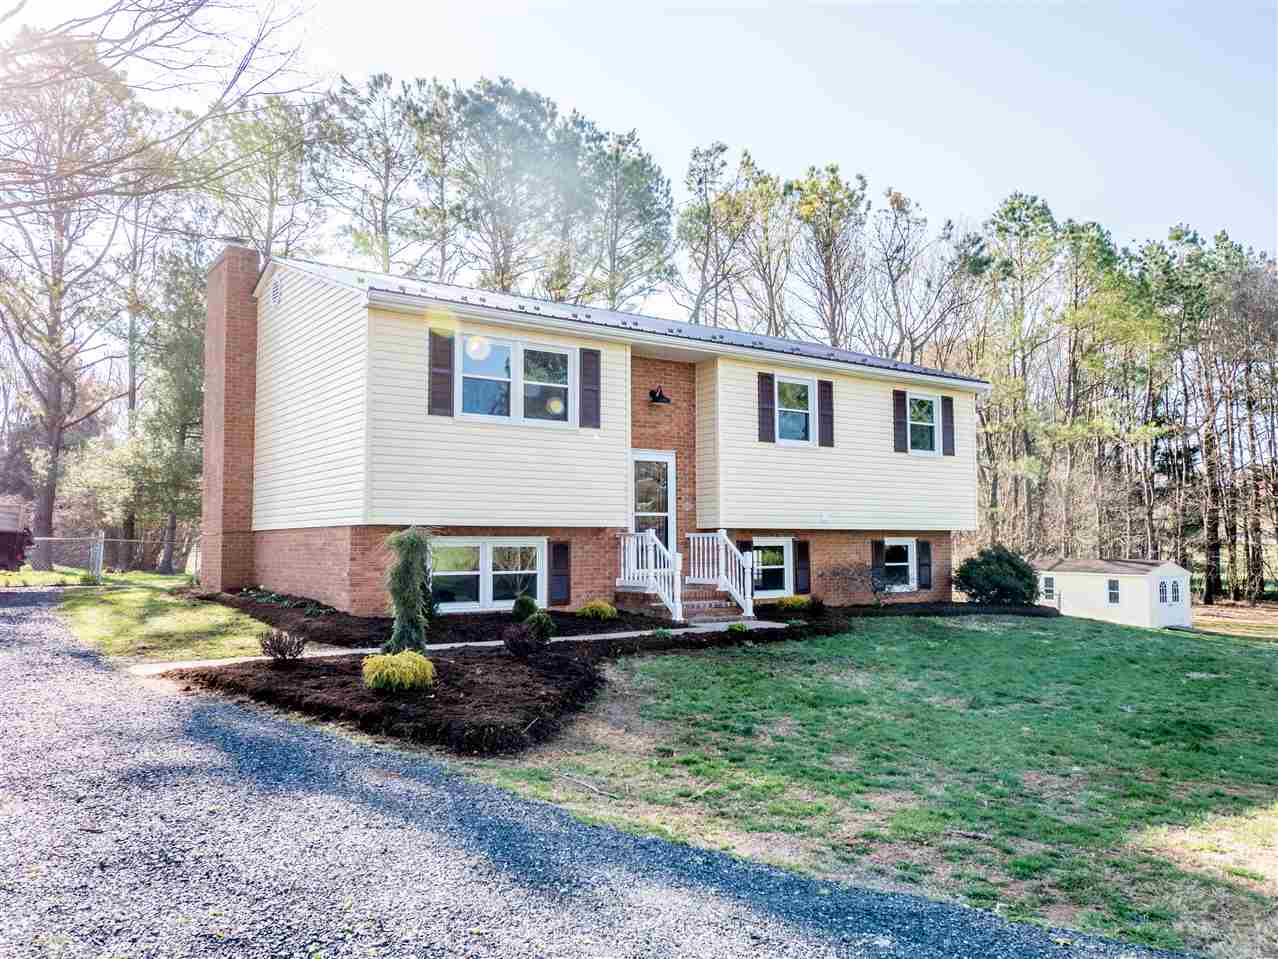 8552 DOE HILL RD, PORT REPUBLIC, VA 24471